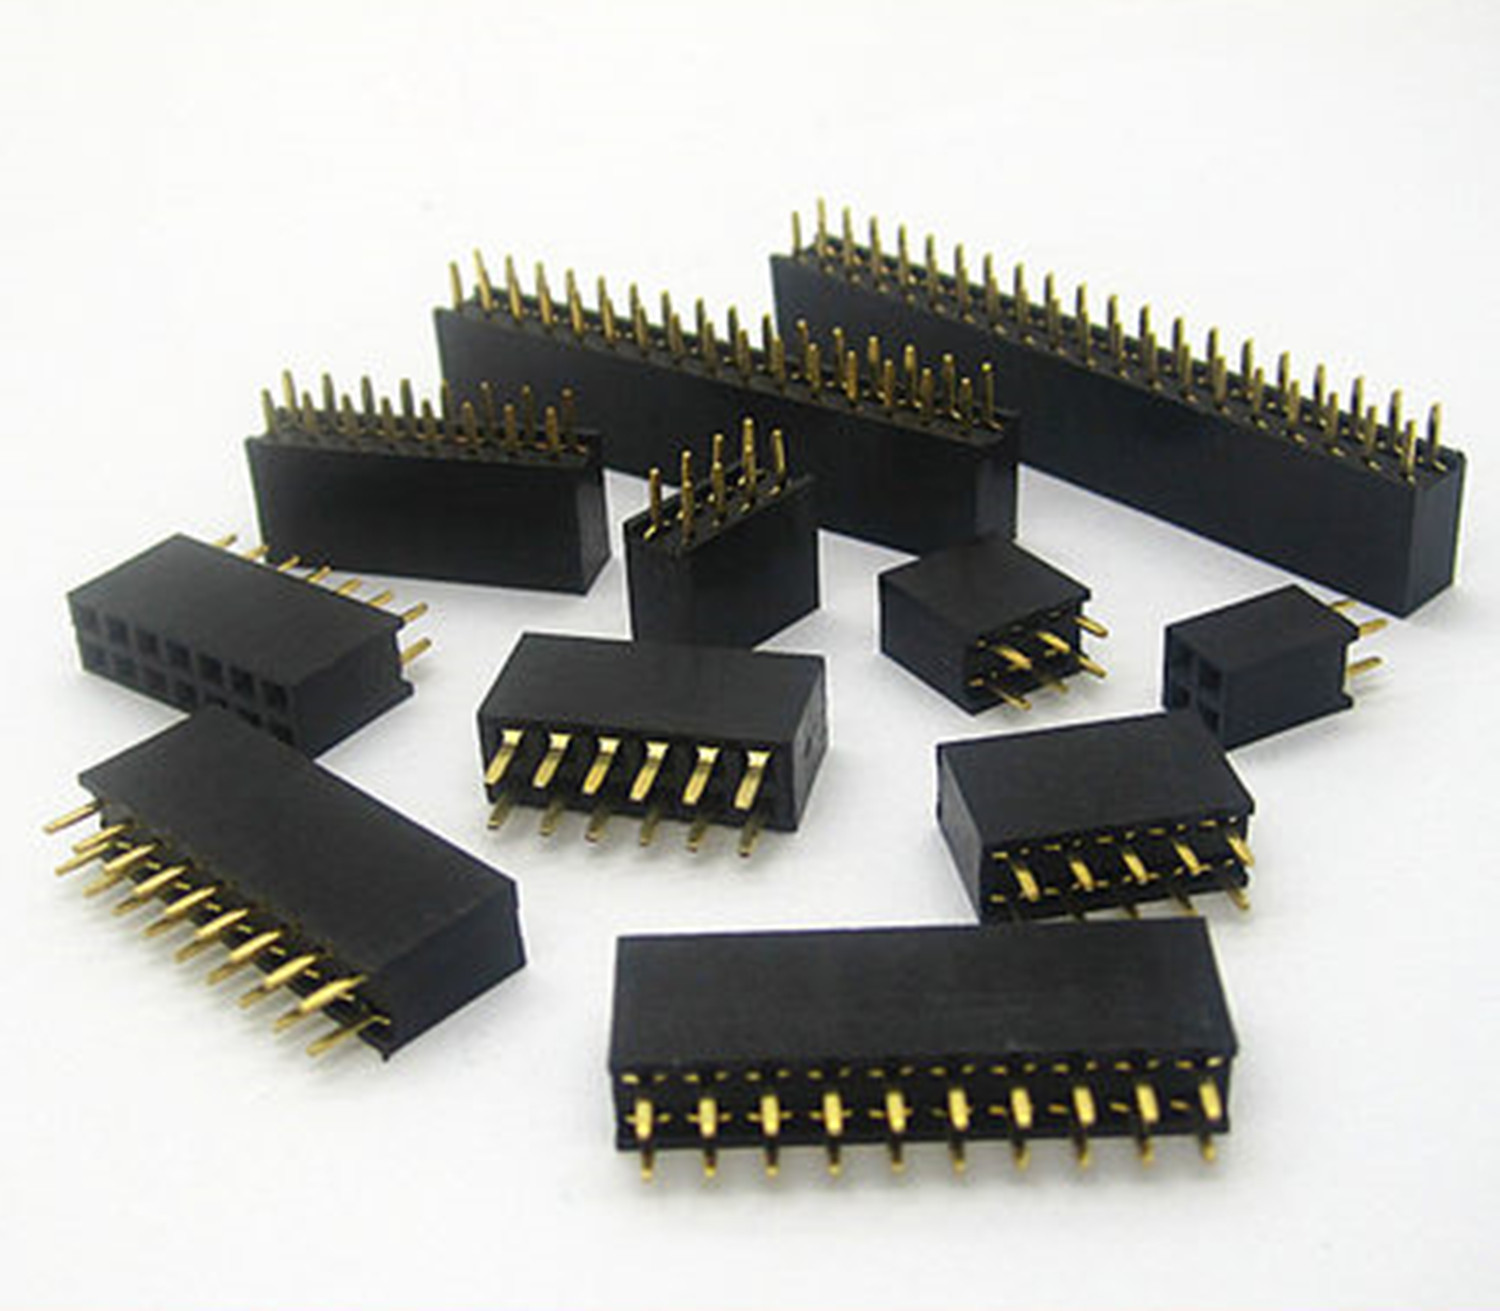 2x2/3/4/5/6/7/8/9/10/11/12/13/14/15/16/17/18/20/25/40Pin Pitch 2.54mm Double Row Stright Female Pin Header Strip PCB Connector double row dupont kit 1p 2 2 2 3 2 4 2 5 2 6 2 7 2 8 2 9 2 10pin housing plastic shell terminal jumper wire connector set